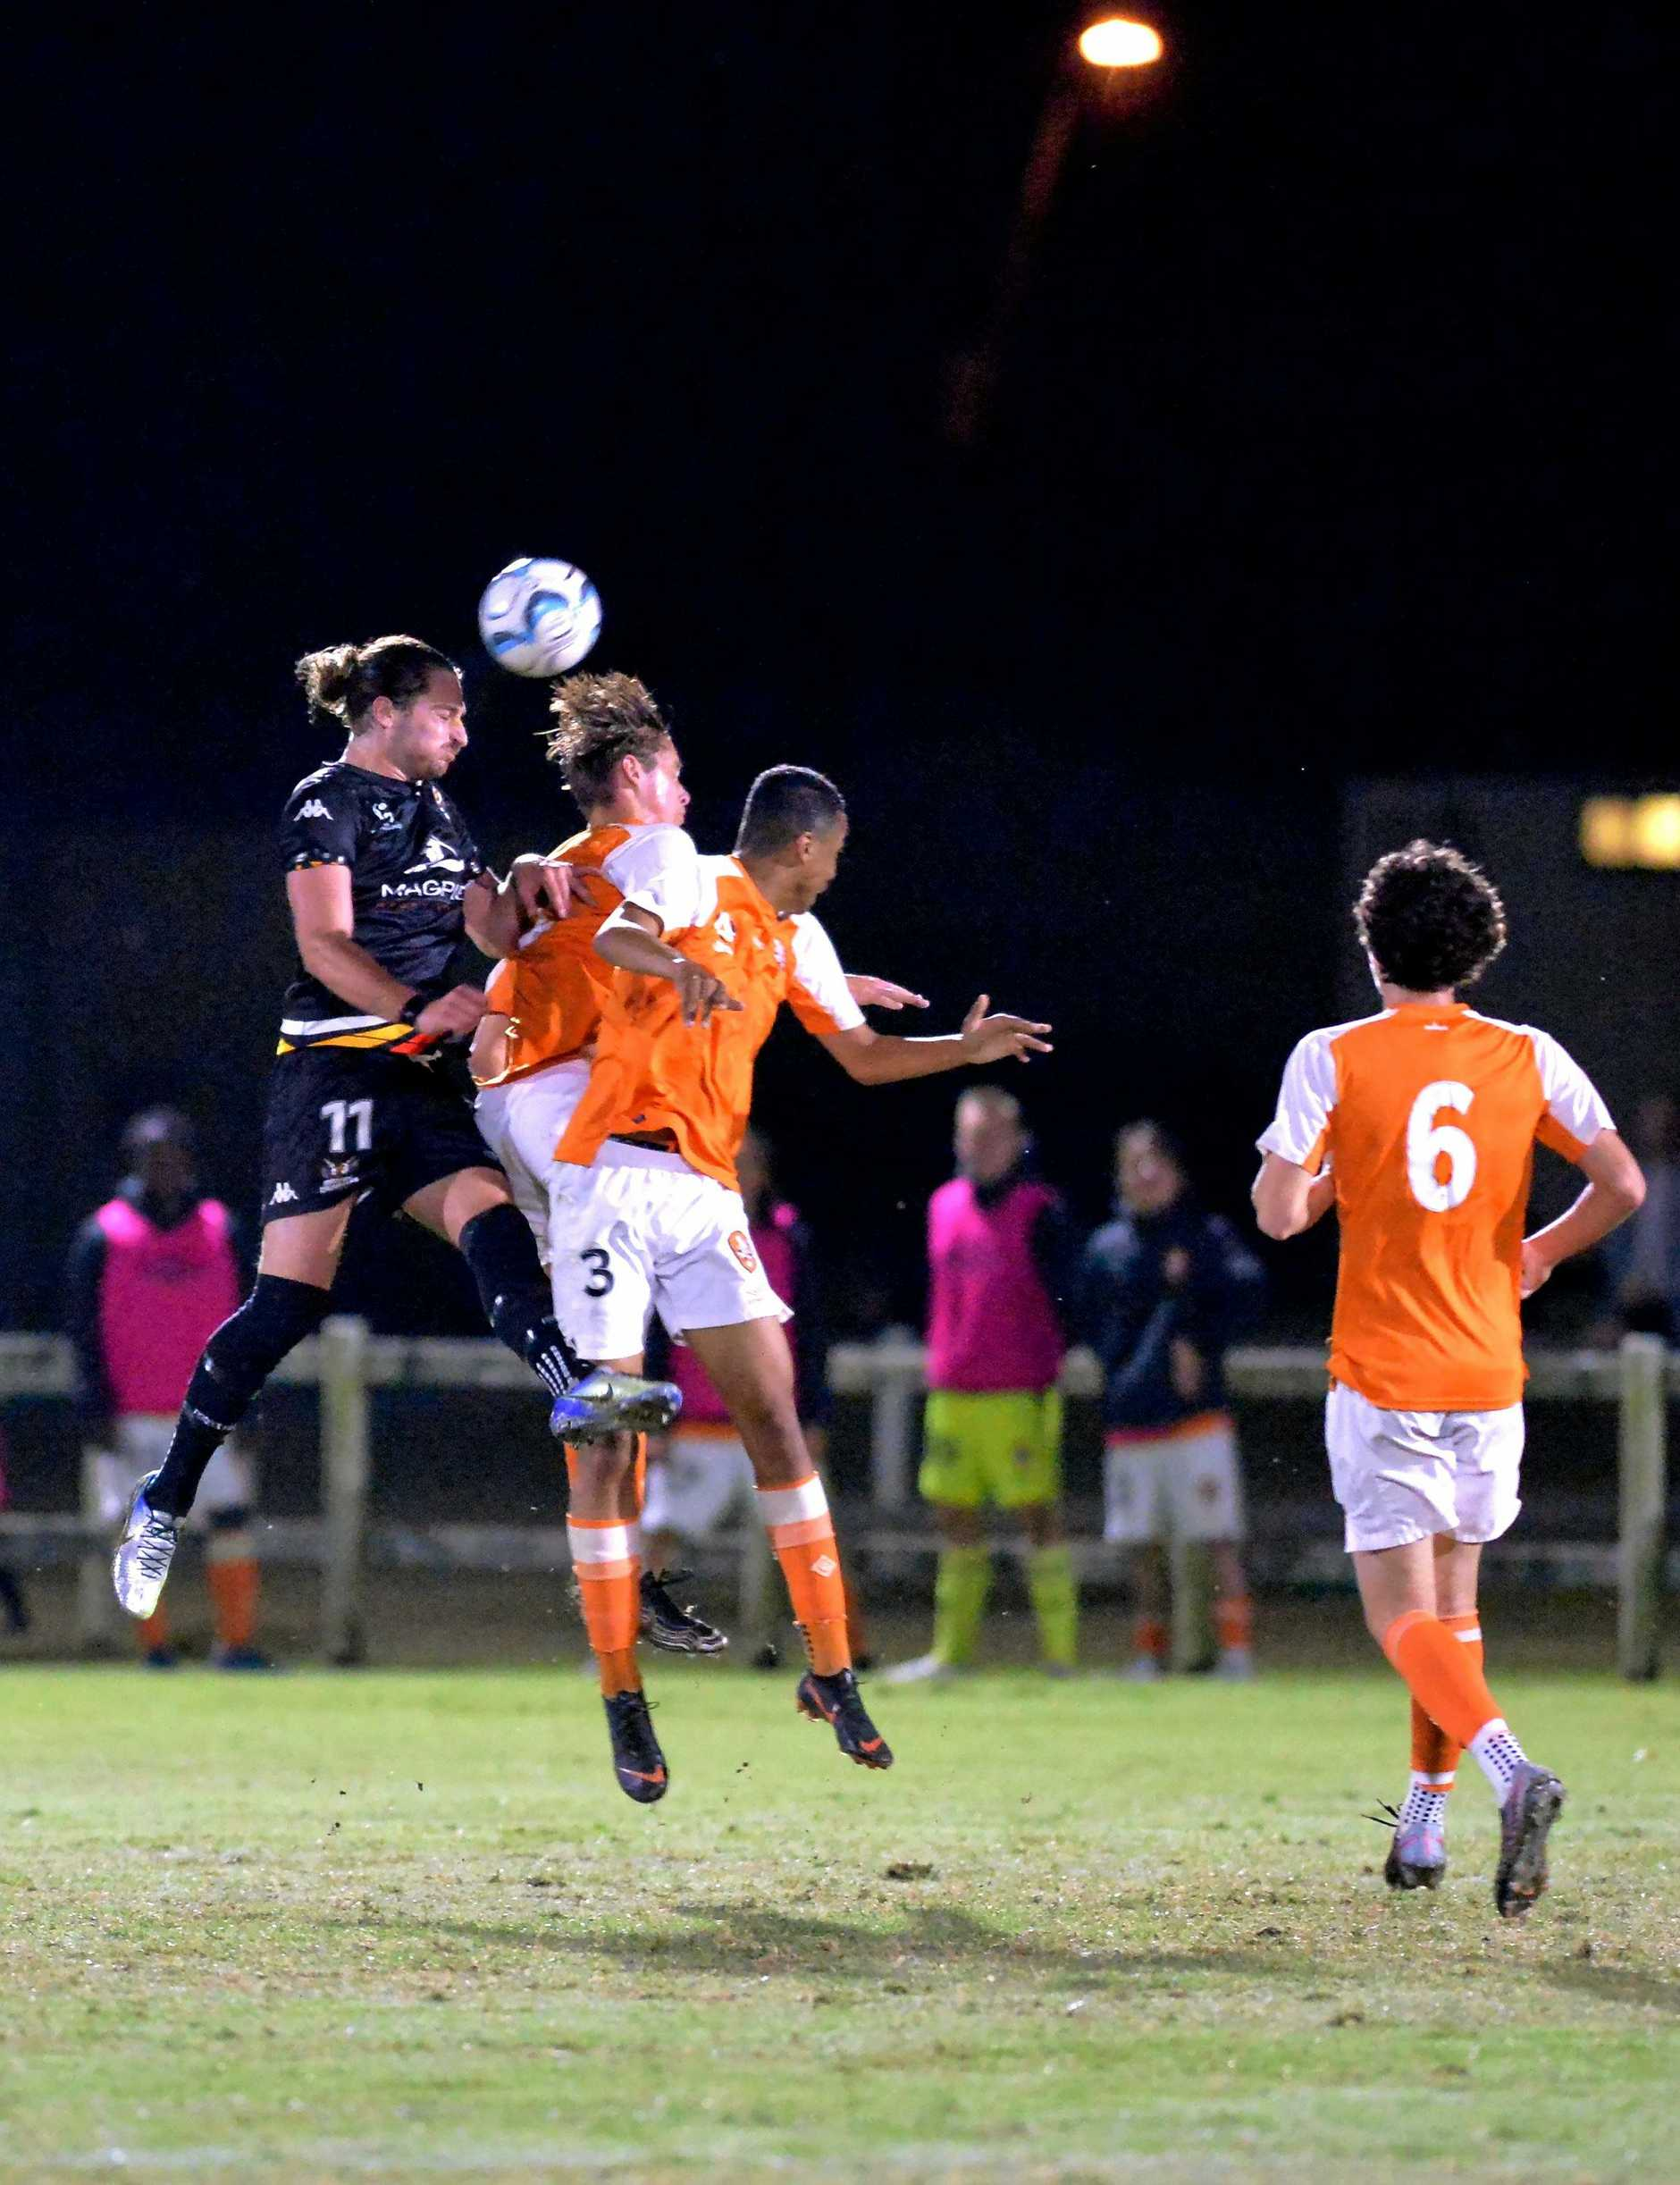 Magpies Crusaders' Kyle Markham flies for a header in the NPL Qld round 23 match against Brisbane Roar Youth at Sologinkin Oval, Mackay on Saturday, August 4.